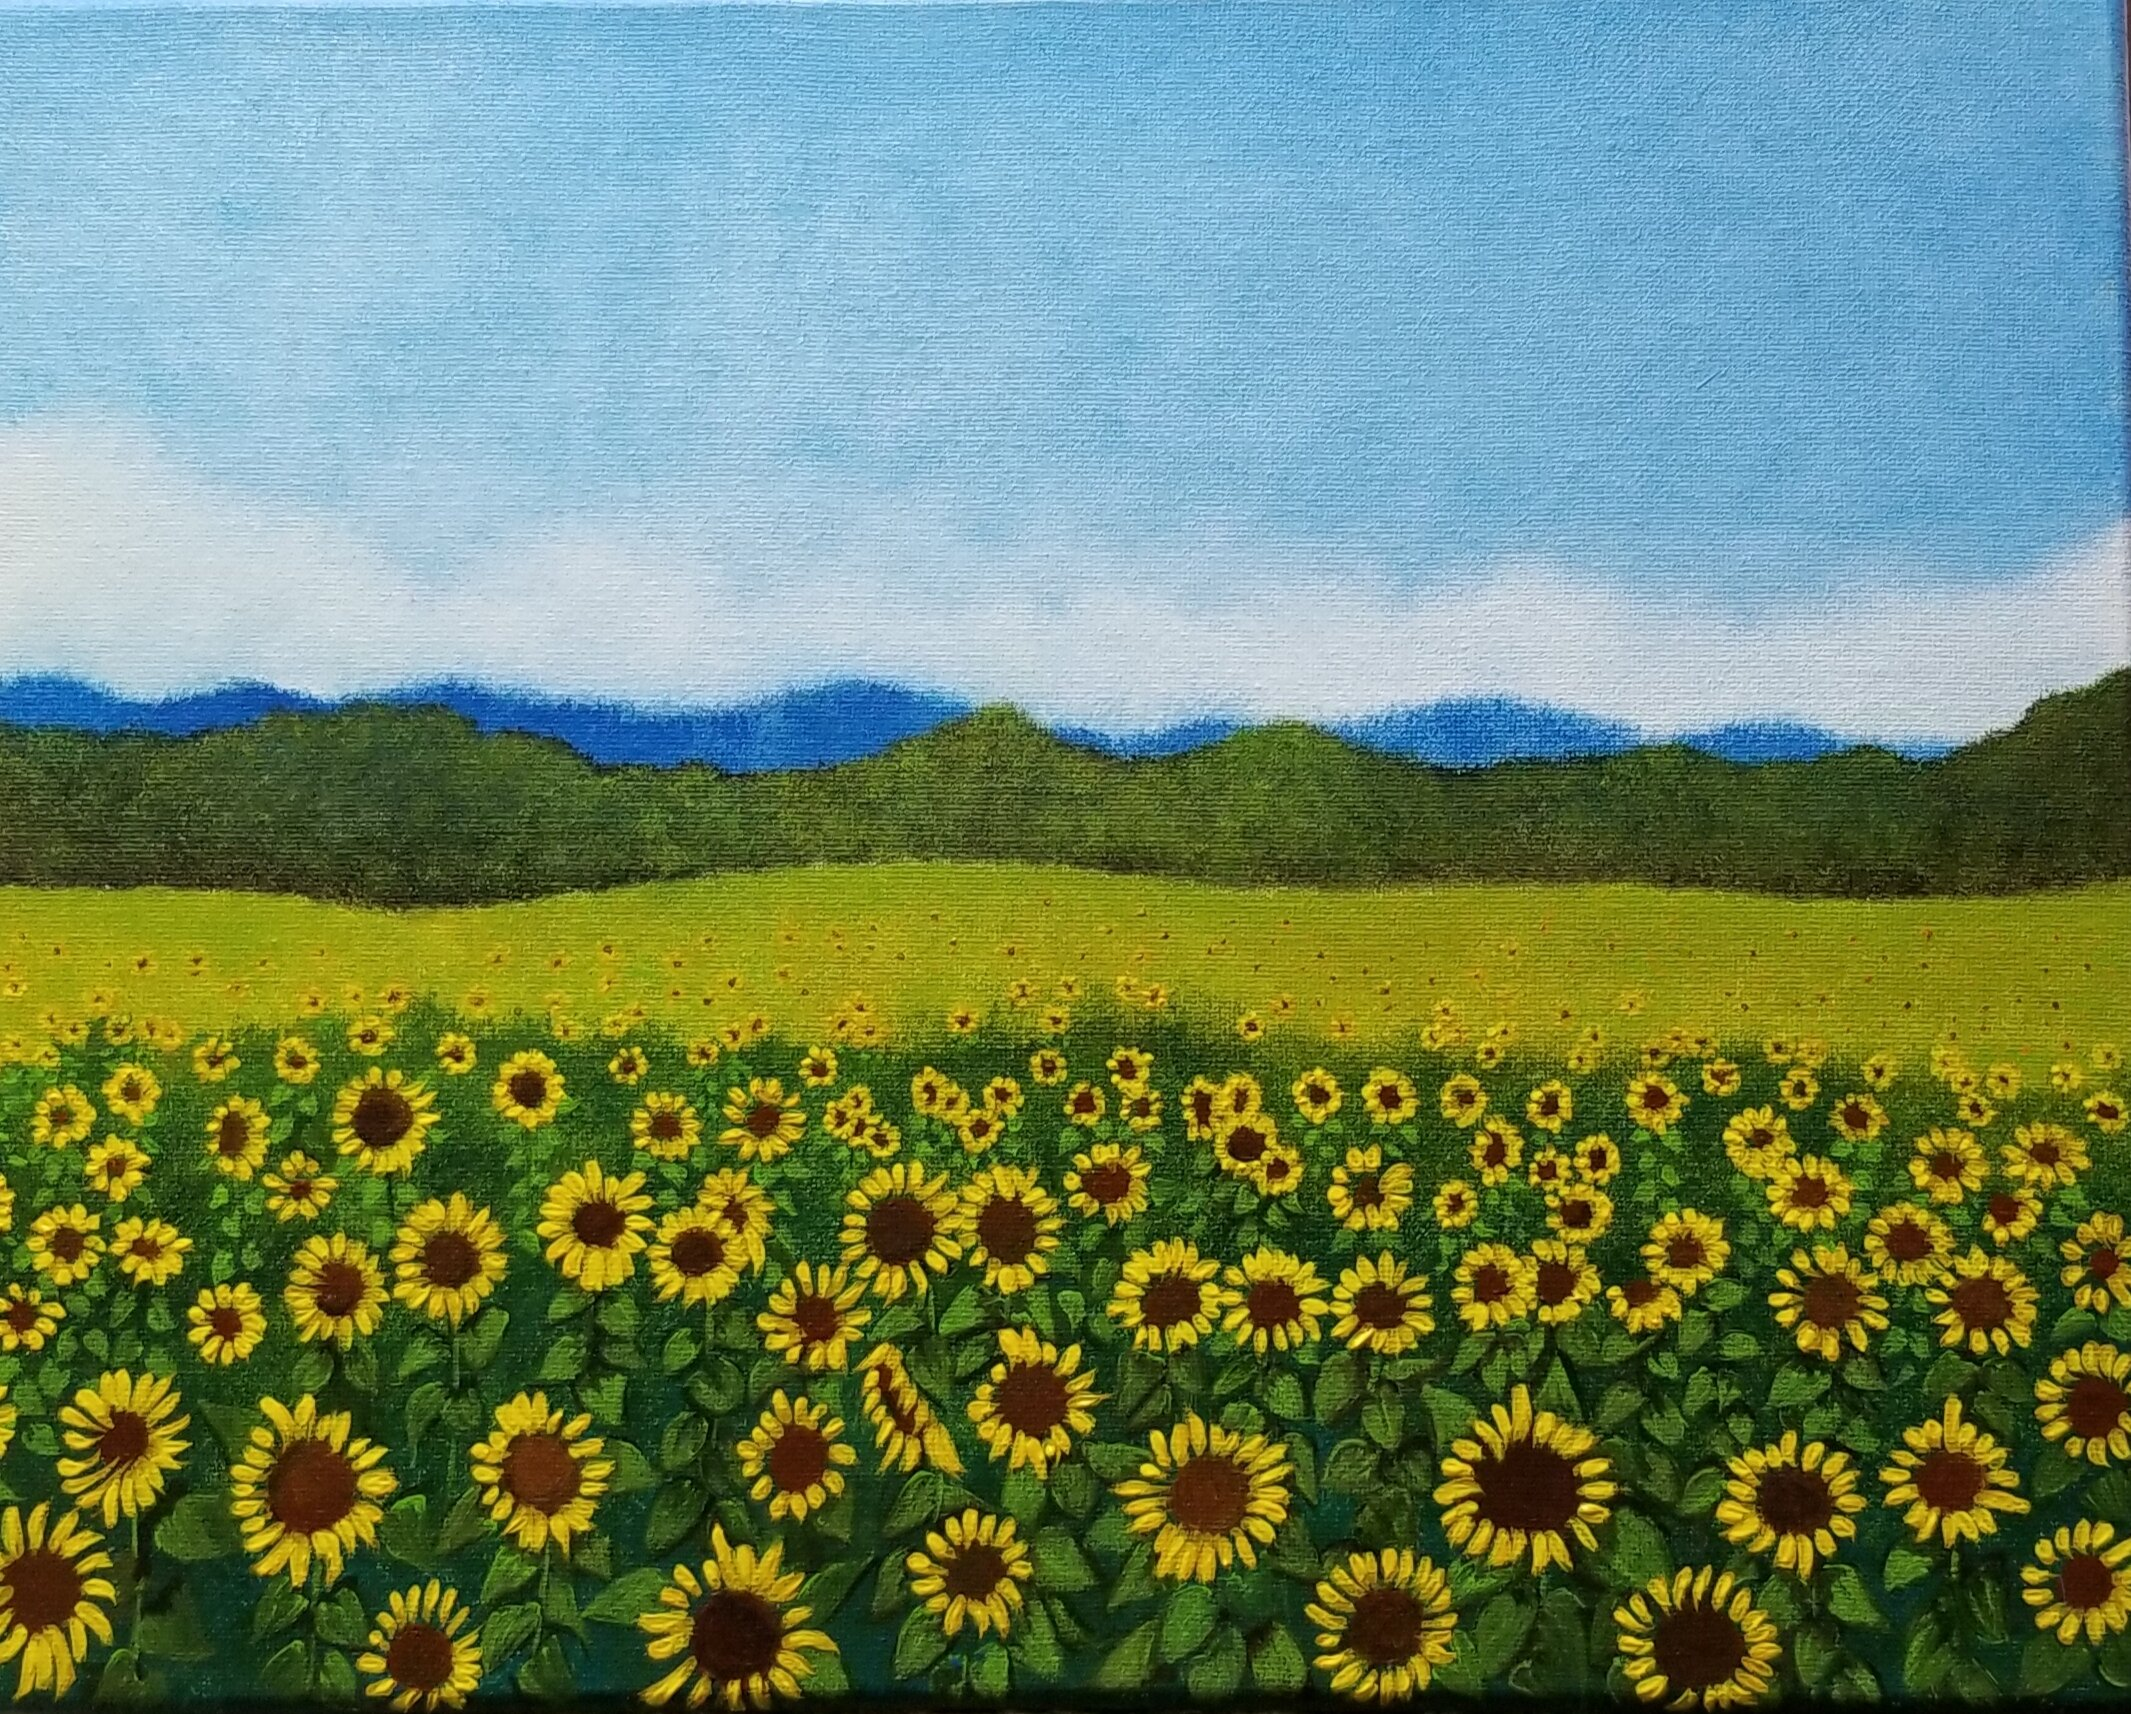 Lackey_Field of Sunflowers_Acrylic 11 X 14.jpg